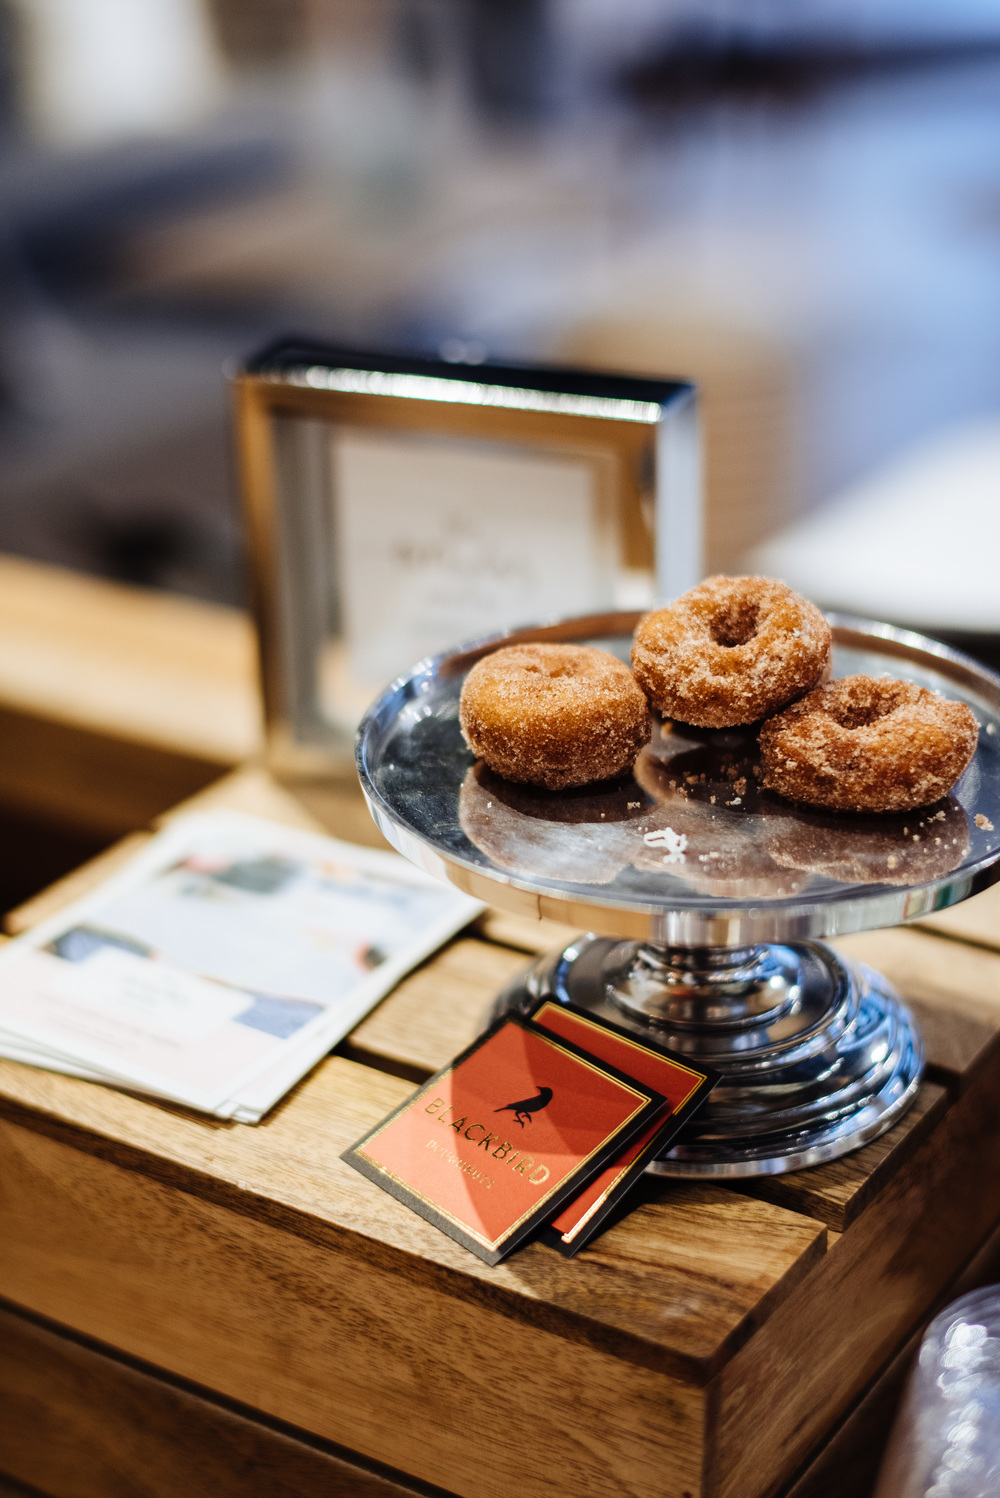 the-everyday-napkin-bash-studio-boston-west-elm-blackbird-donuts-south-end